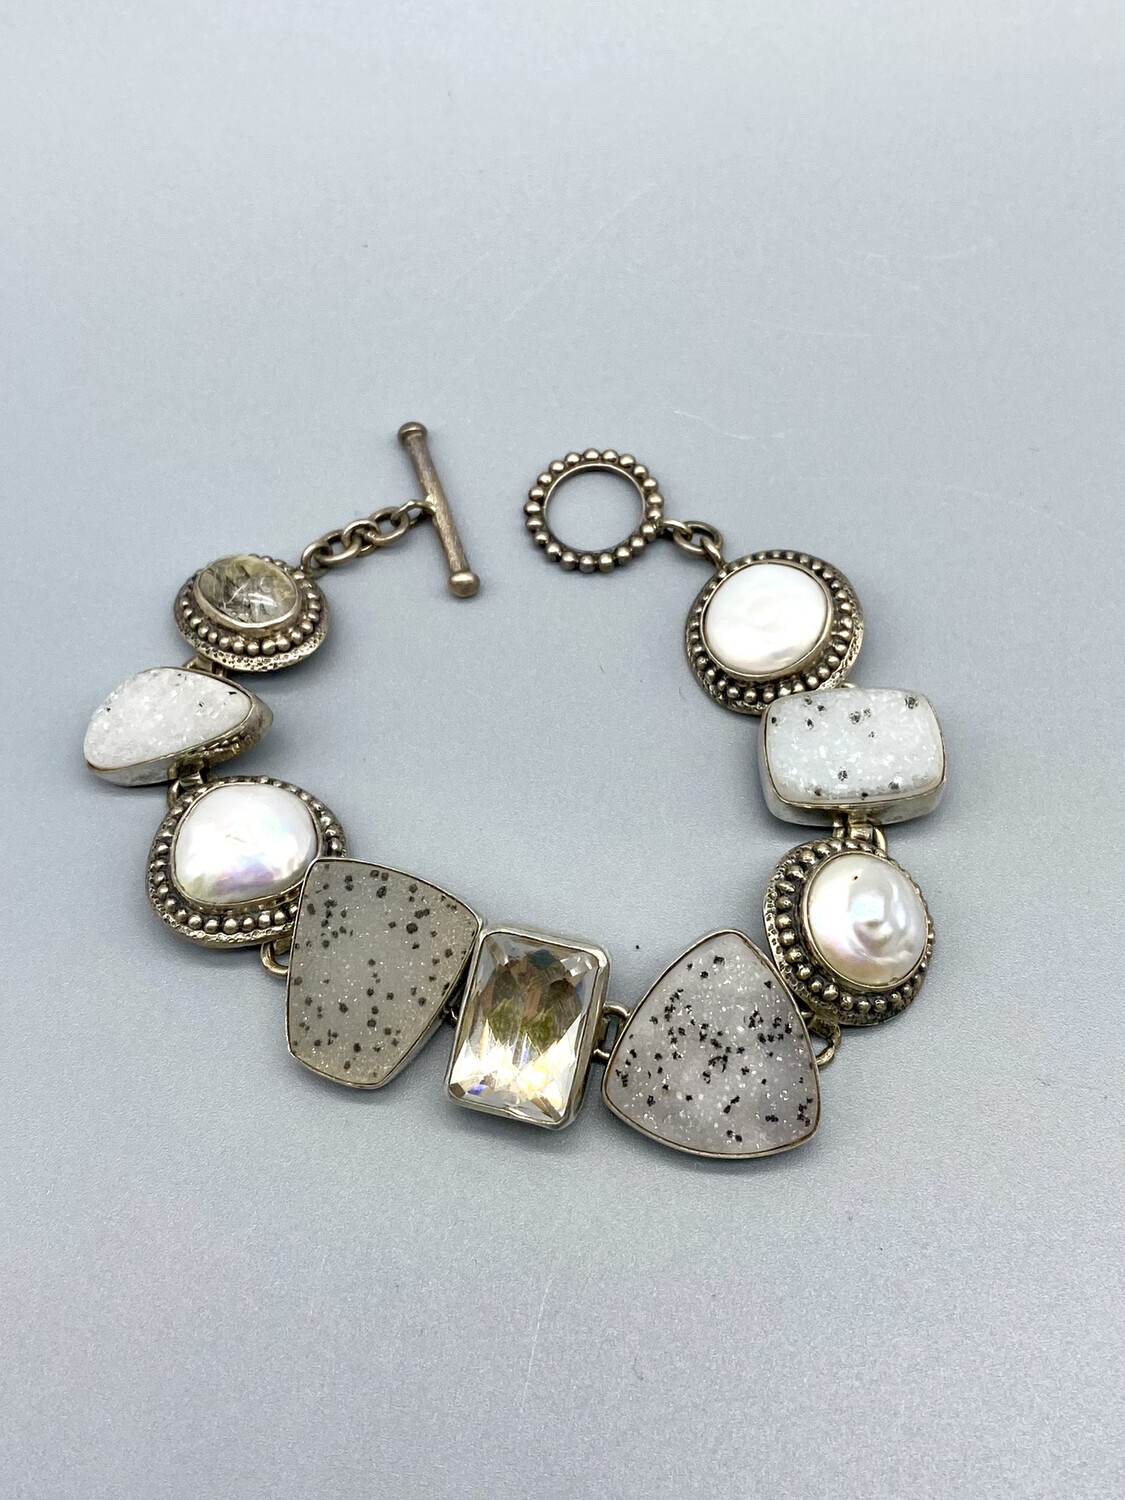 White Druzy, Quartz and Pearl Bracelet